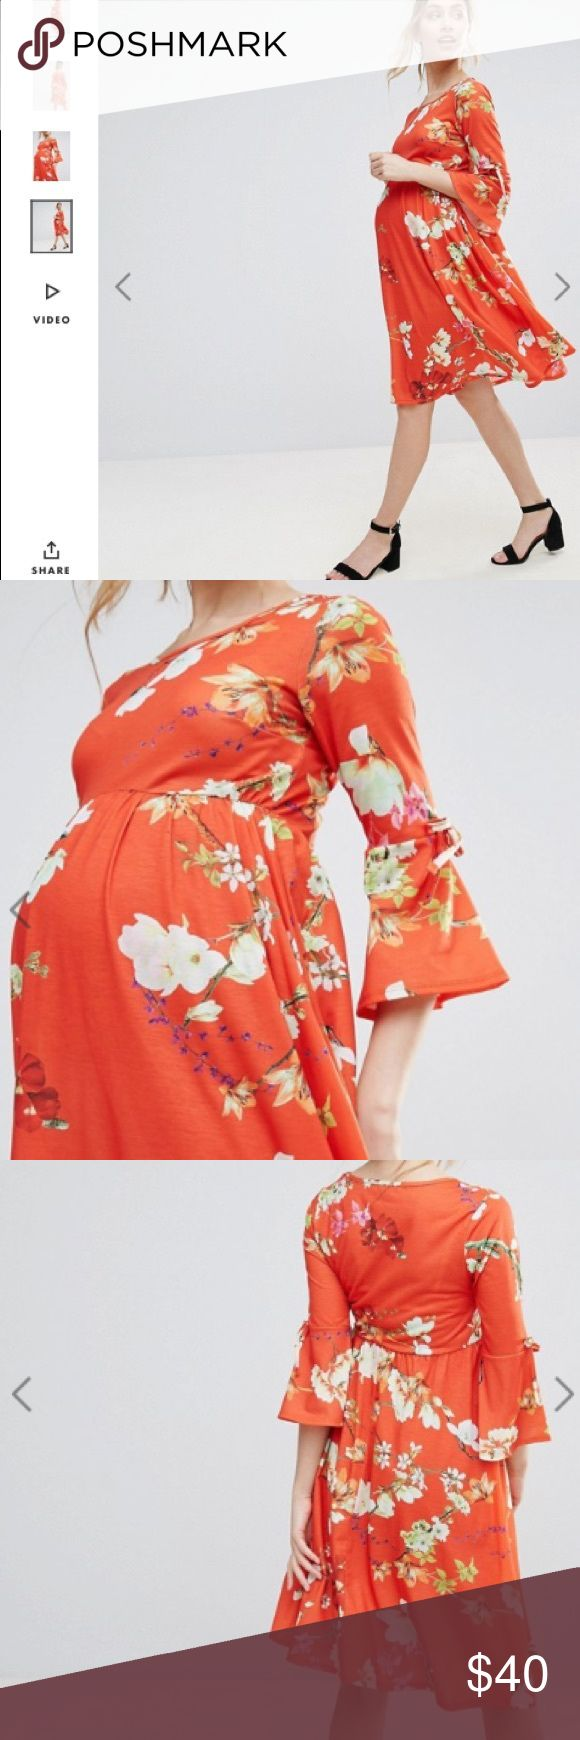 Sale 😍NWT ASOS maternity flower dress Beautiful dress with sleeves ! Originally sealed. Perfect fit. Please feel free to ask any questions 😍 ASOS Maternity Dresses